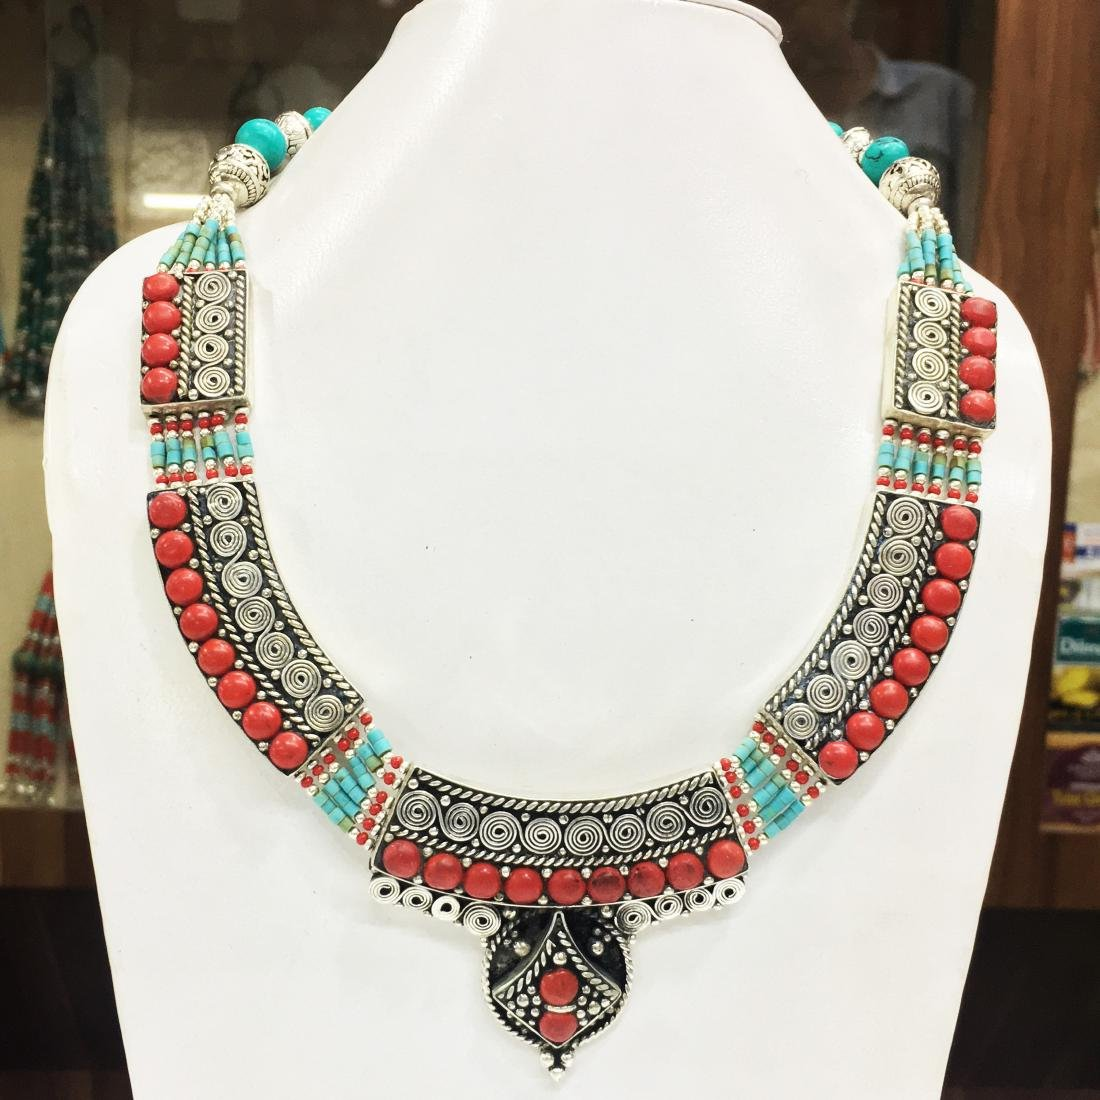 Vintage Turquoise & Coral Tibetan Handmade Necklace